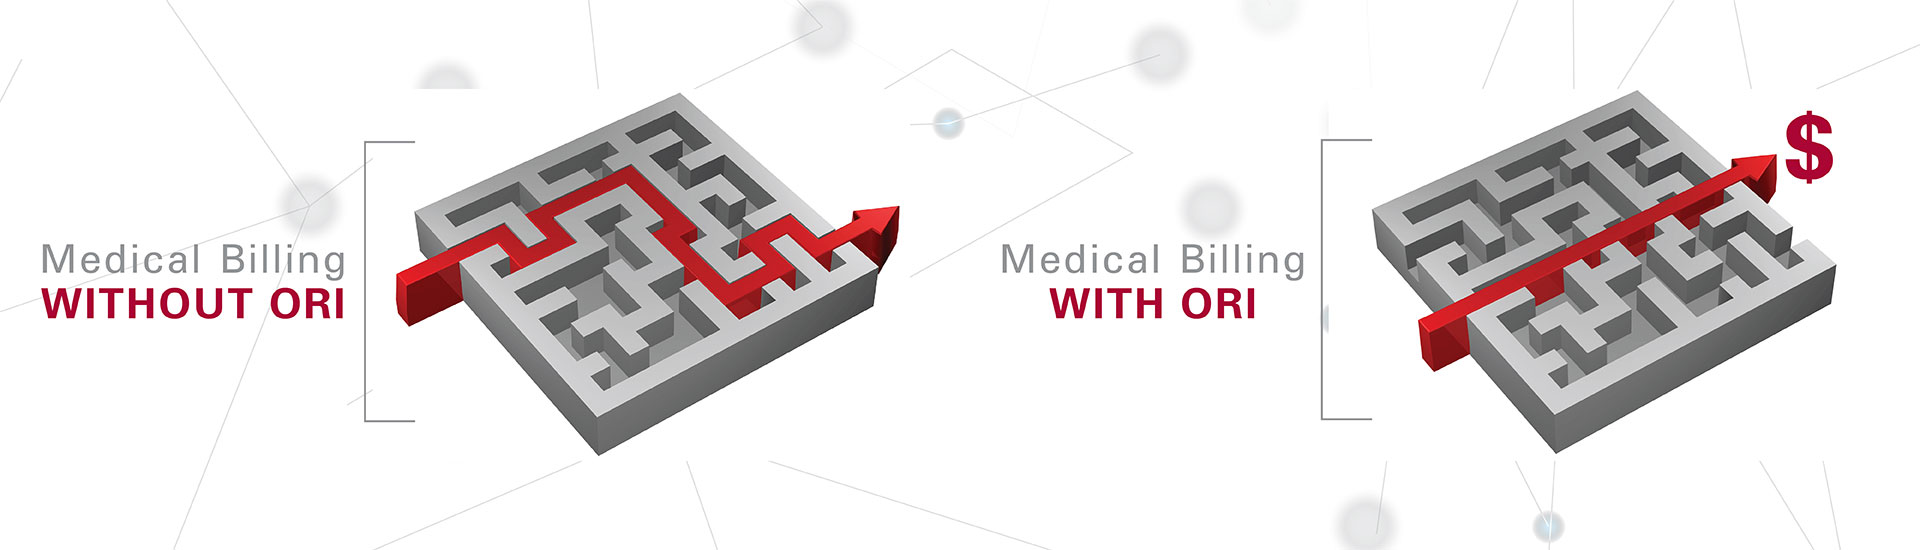 Why Choose Outsourcing For Your Medical Billing Needs?